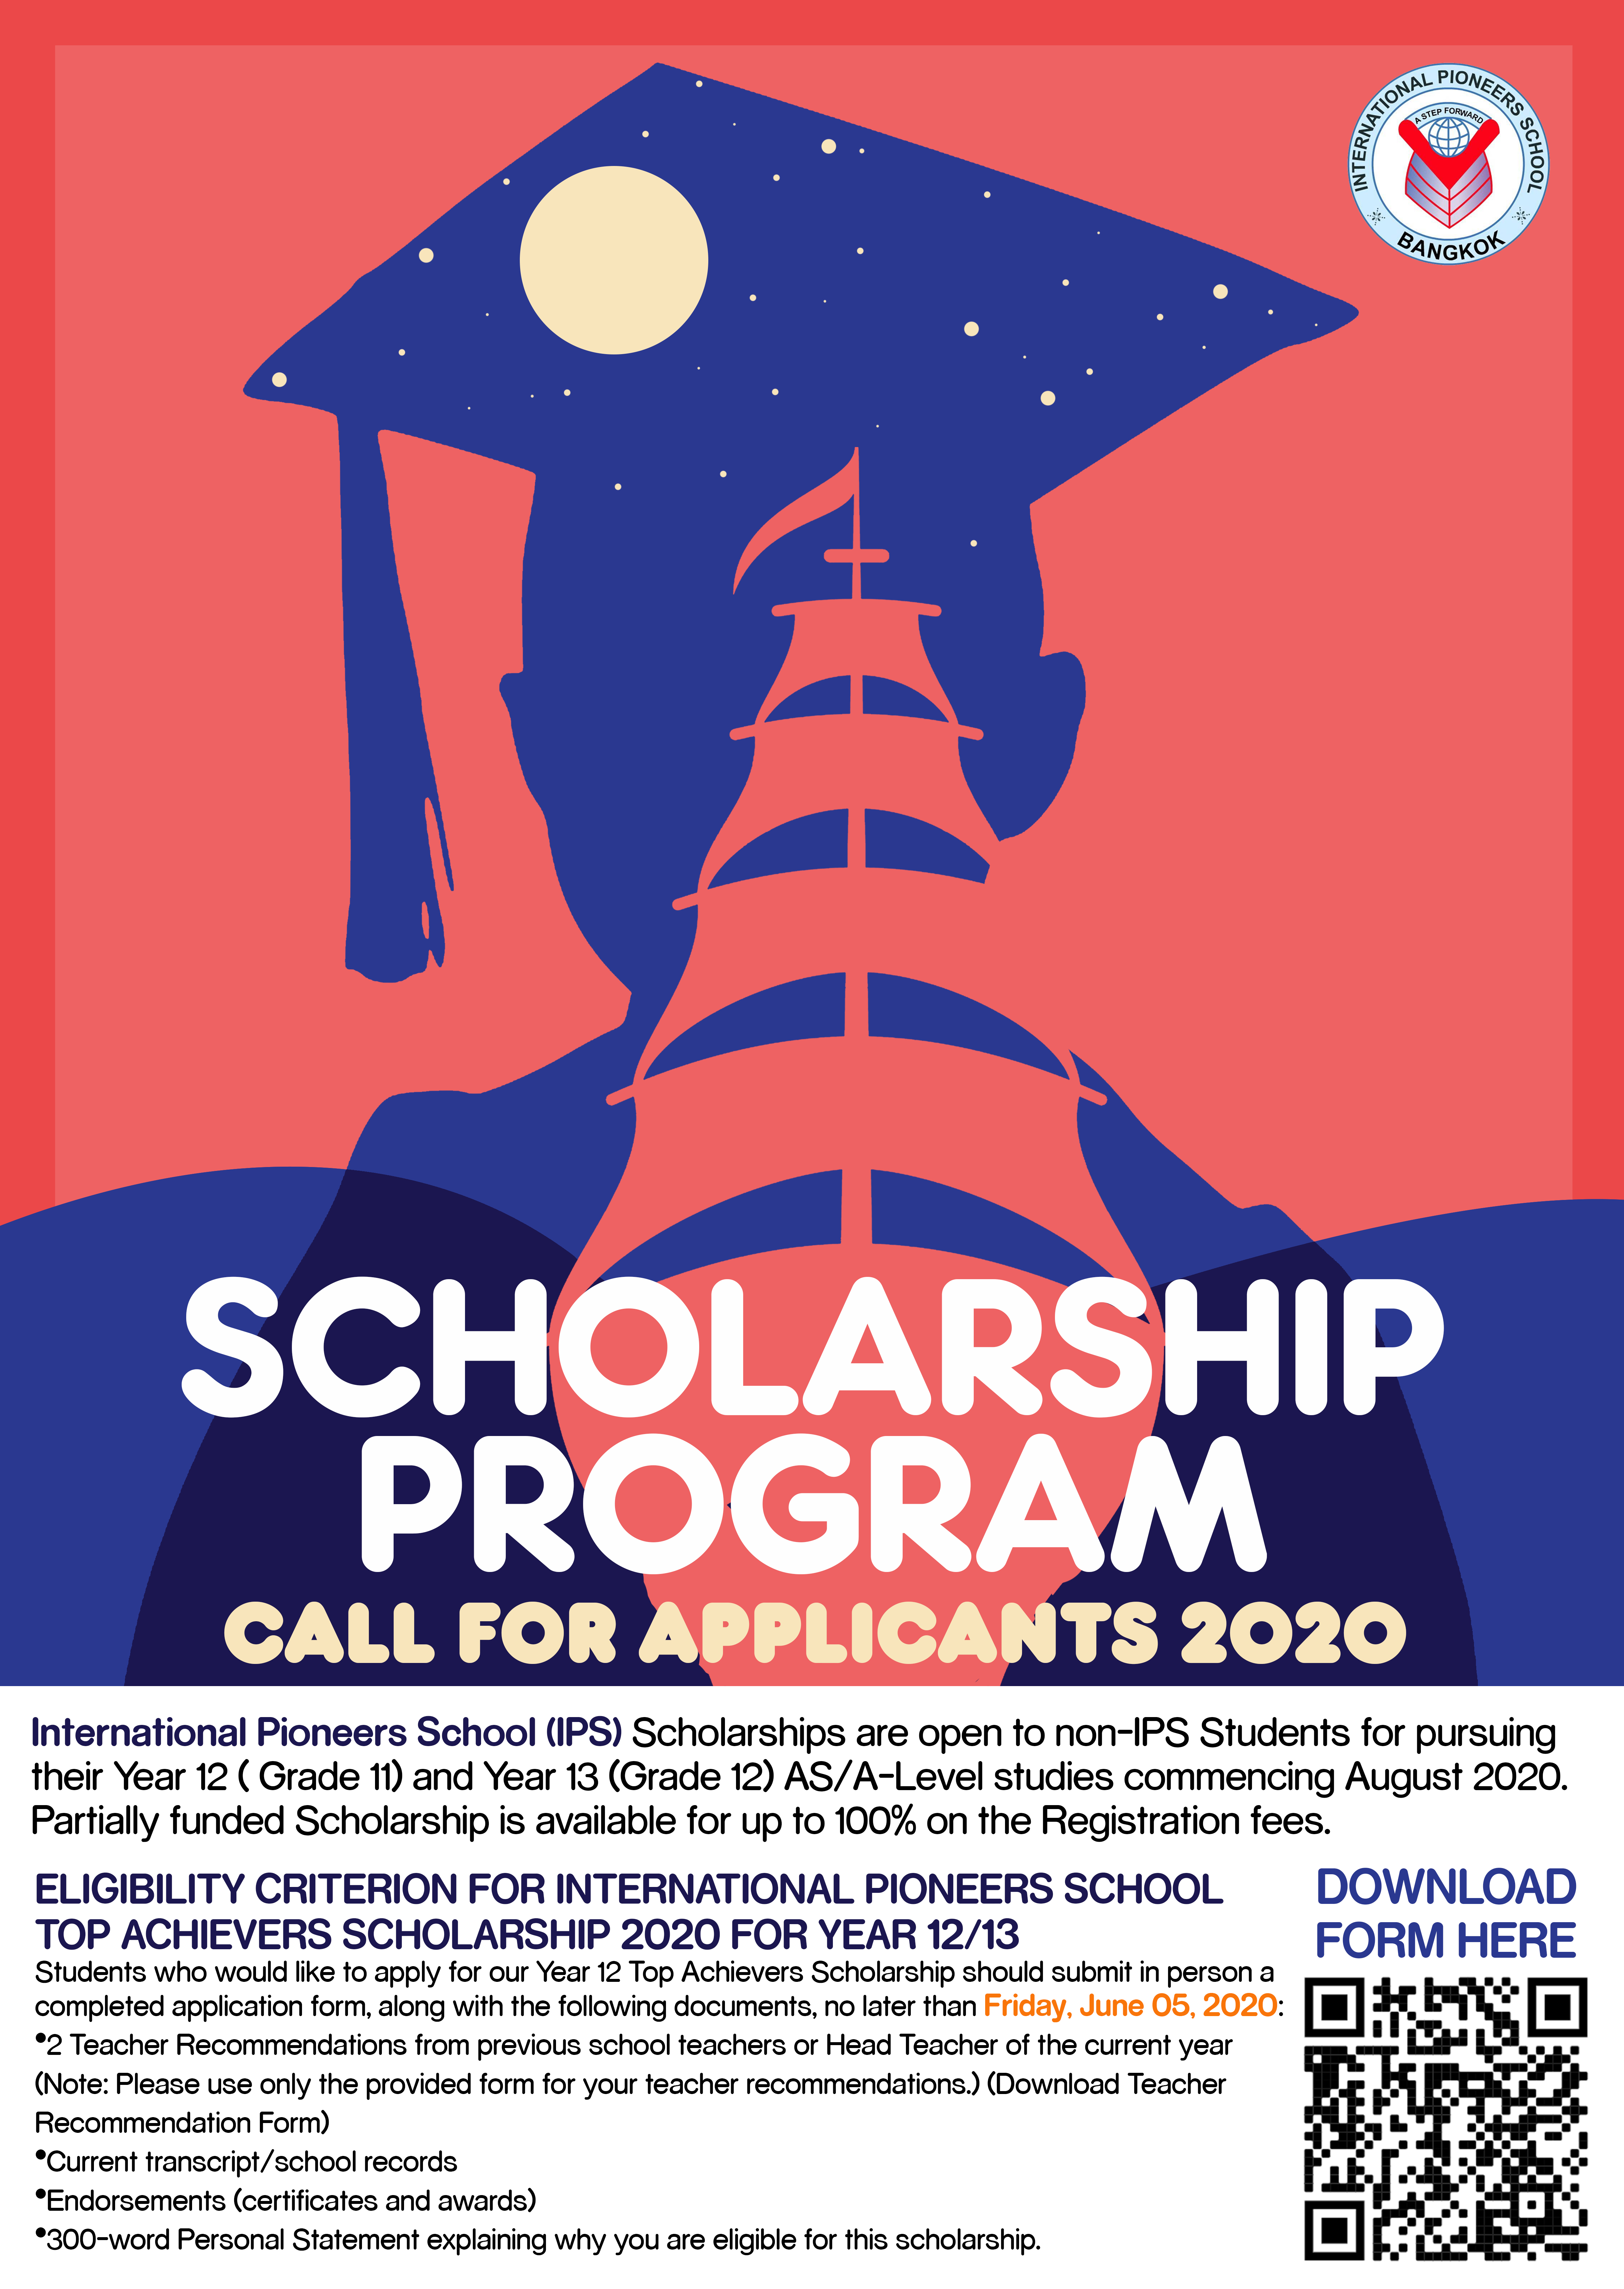 High School Scholarships for  Non-IPS Students 2020